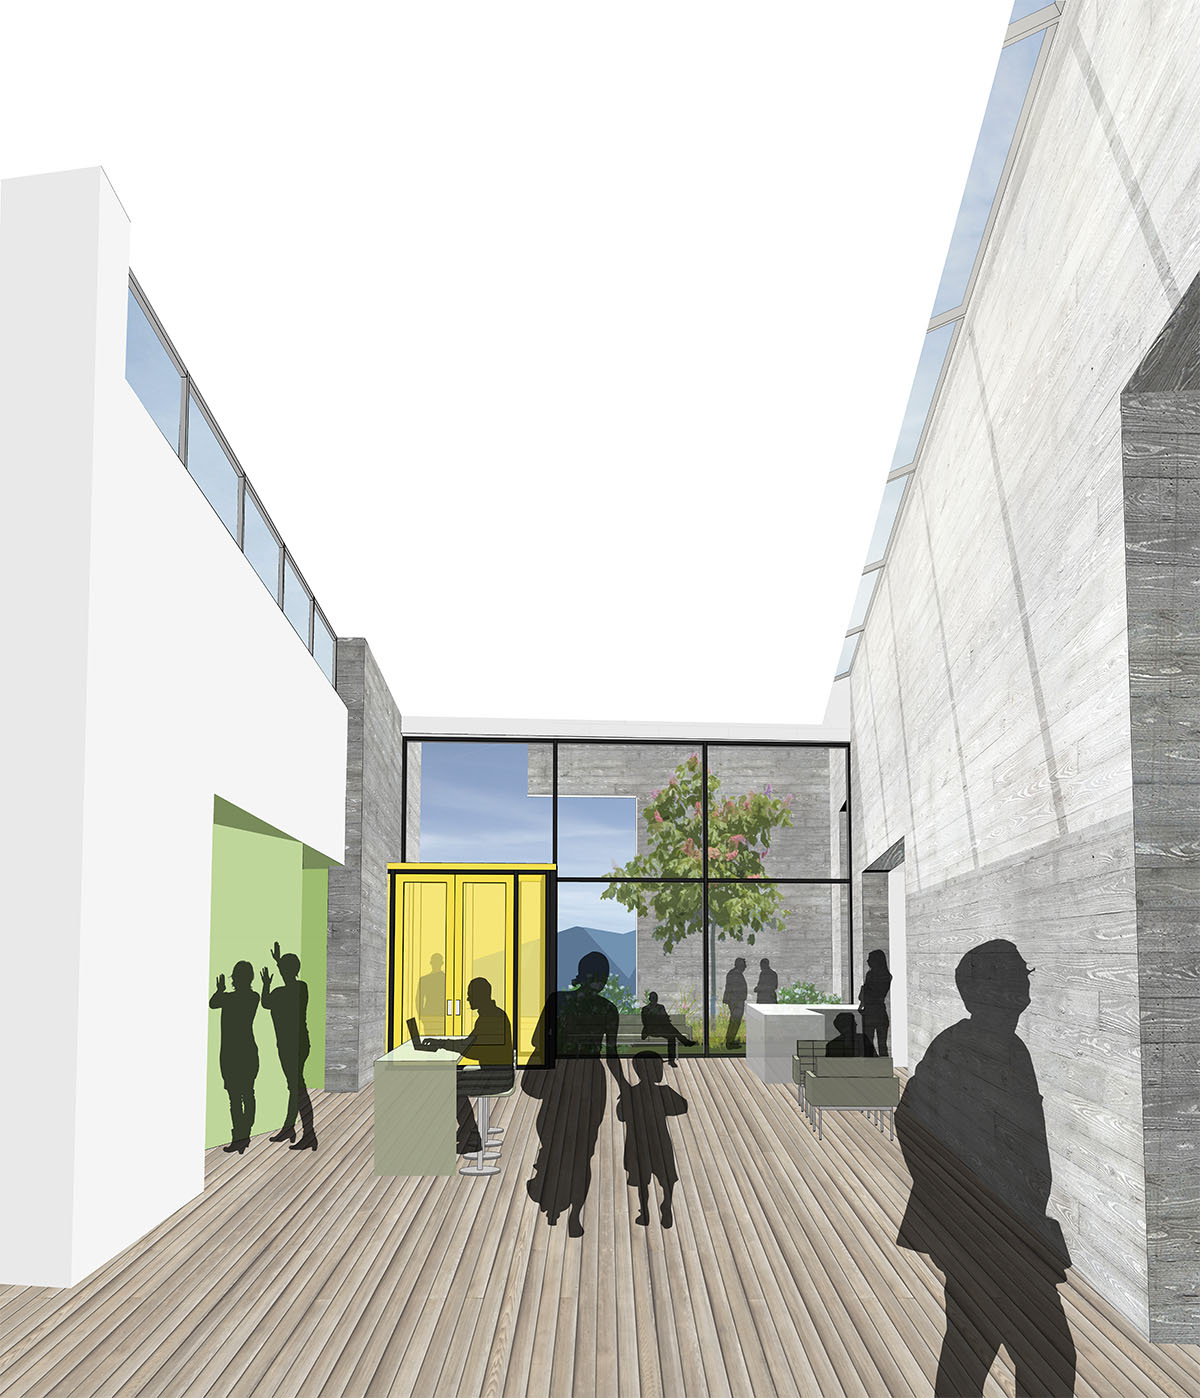 Interior rendering for deaf and blind education school.